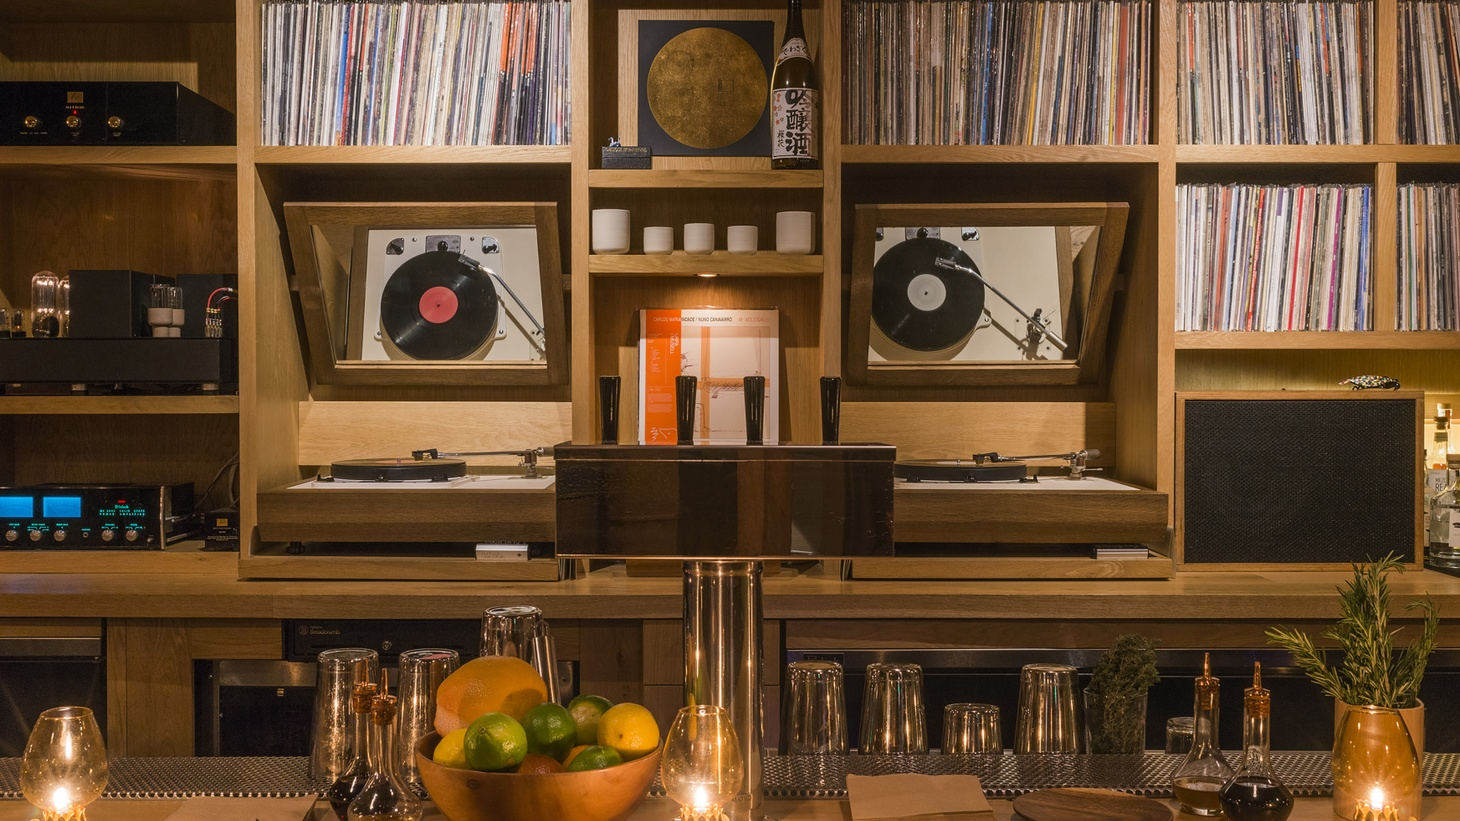 Instead of a wall of alcohol bottles, the bar In Sheep's Clothing proudly shows off its vinyl collection.